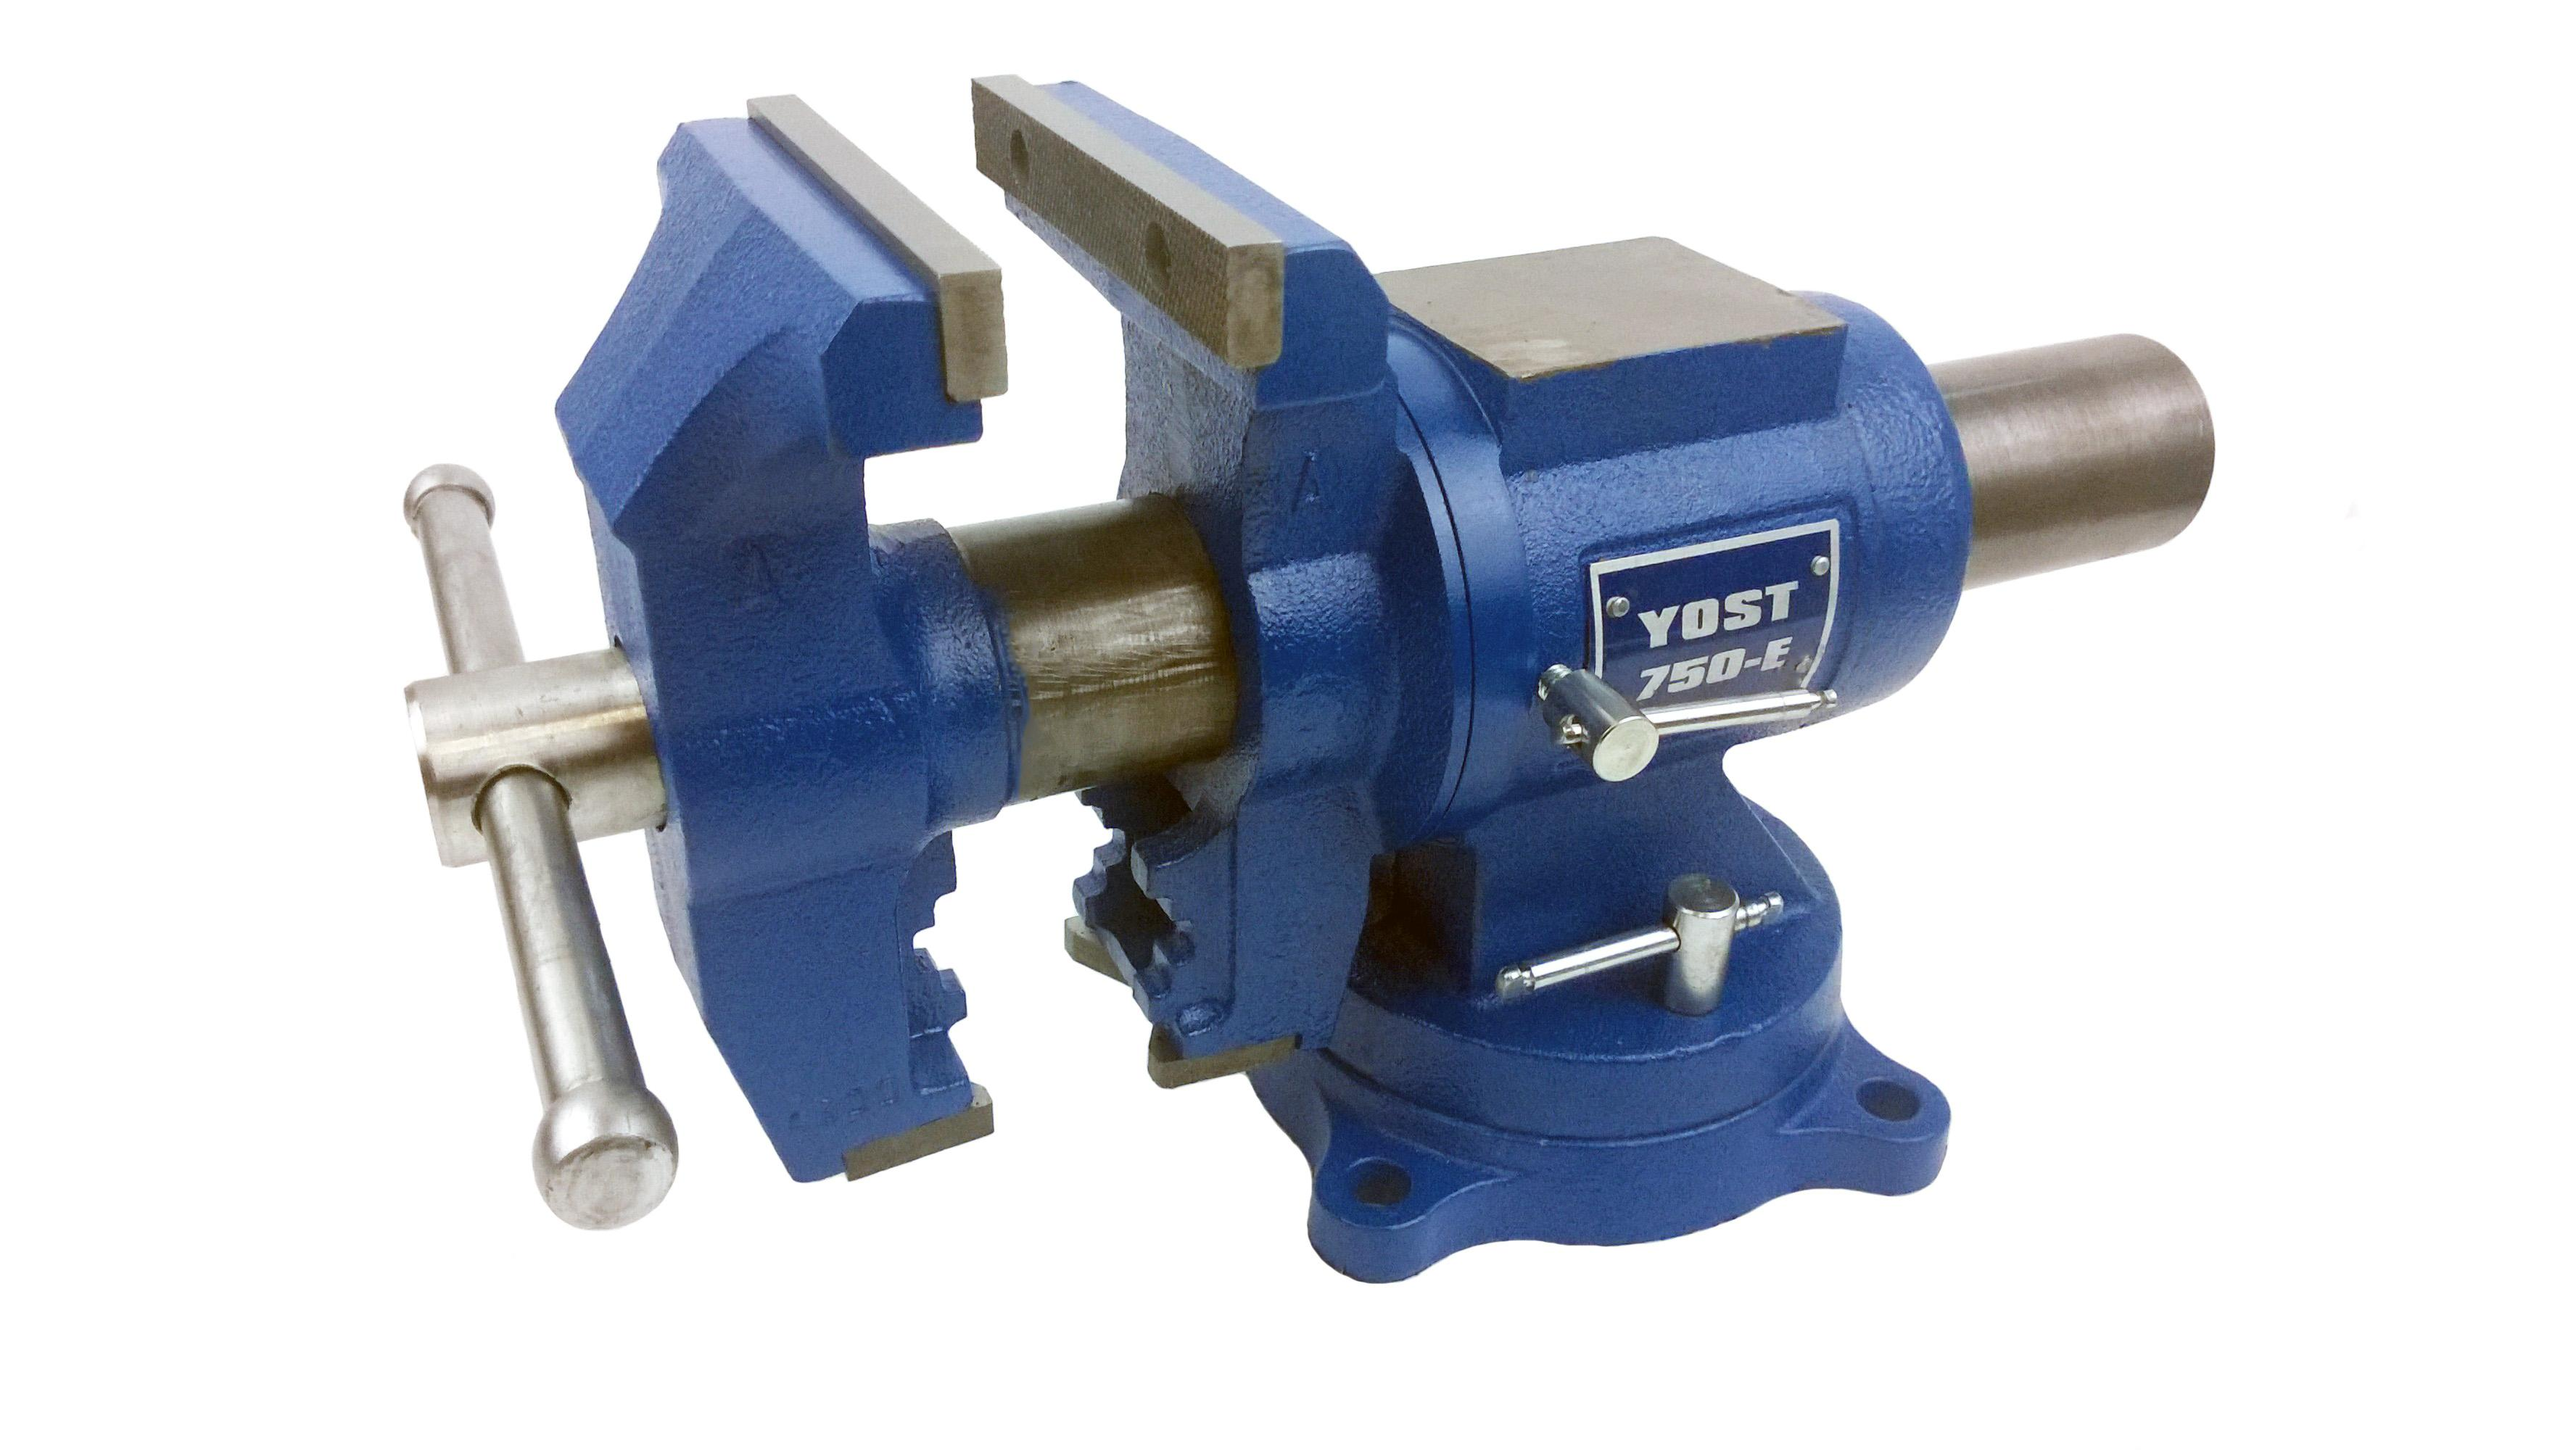 Yost 750e Rotating Bench Vise Amazon Com Industrial Scientific